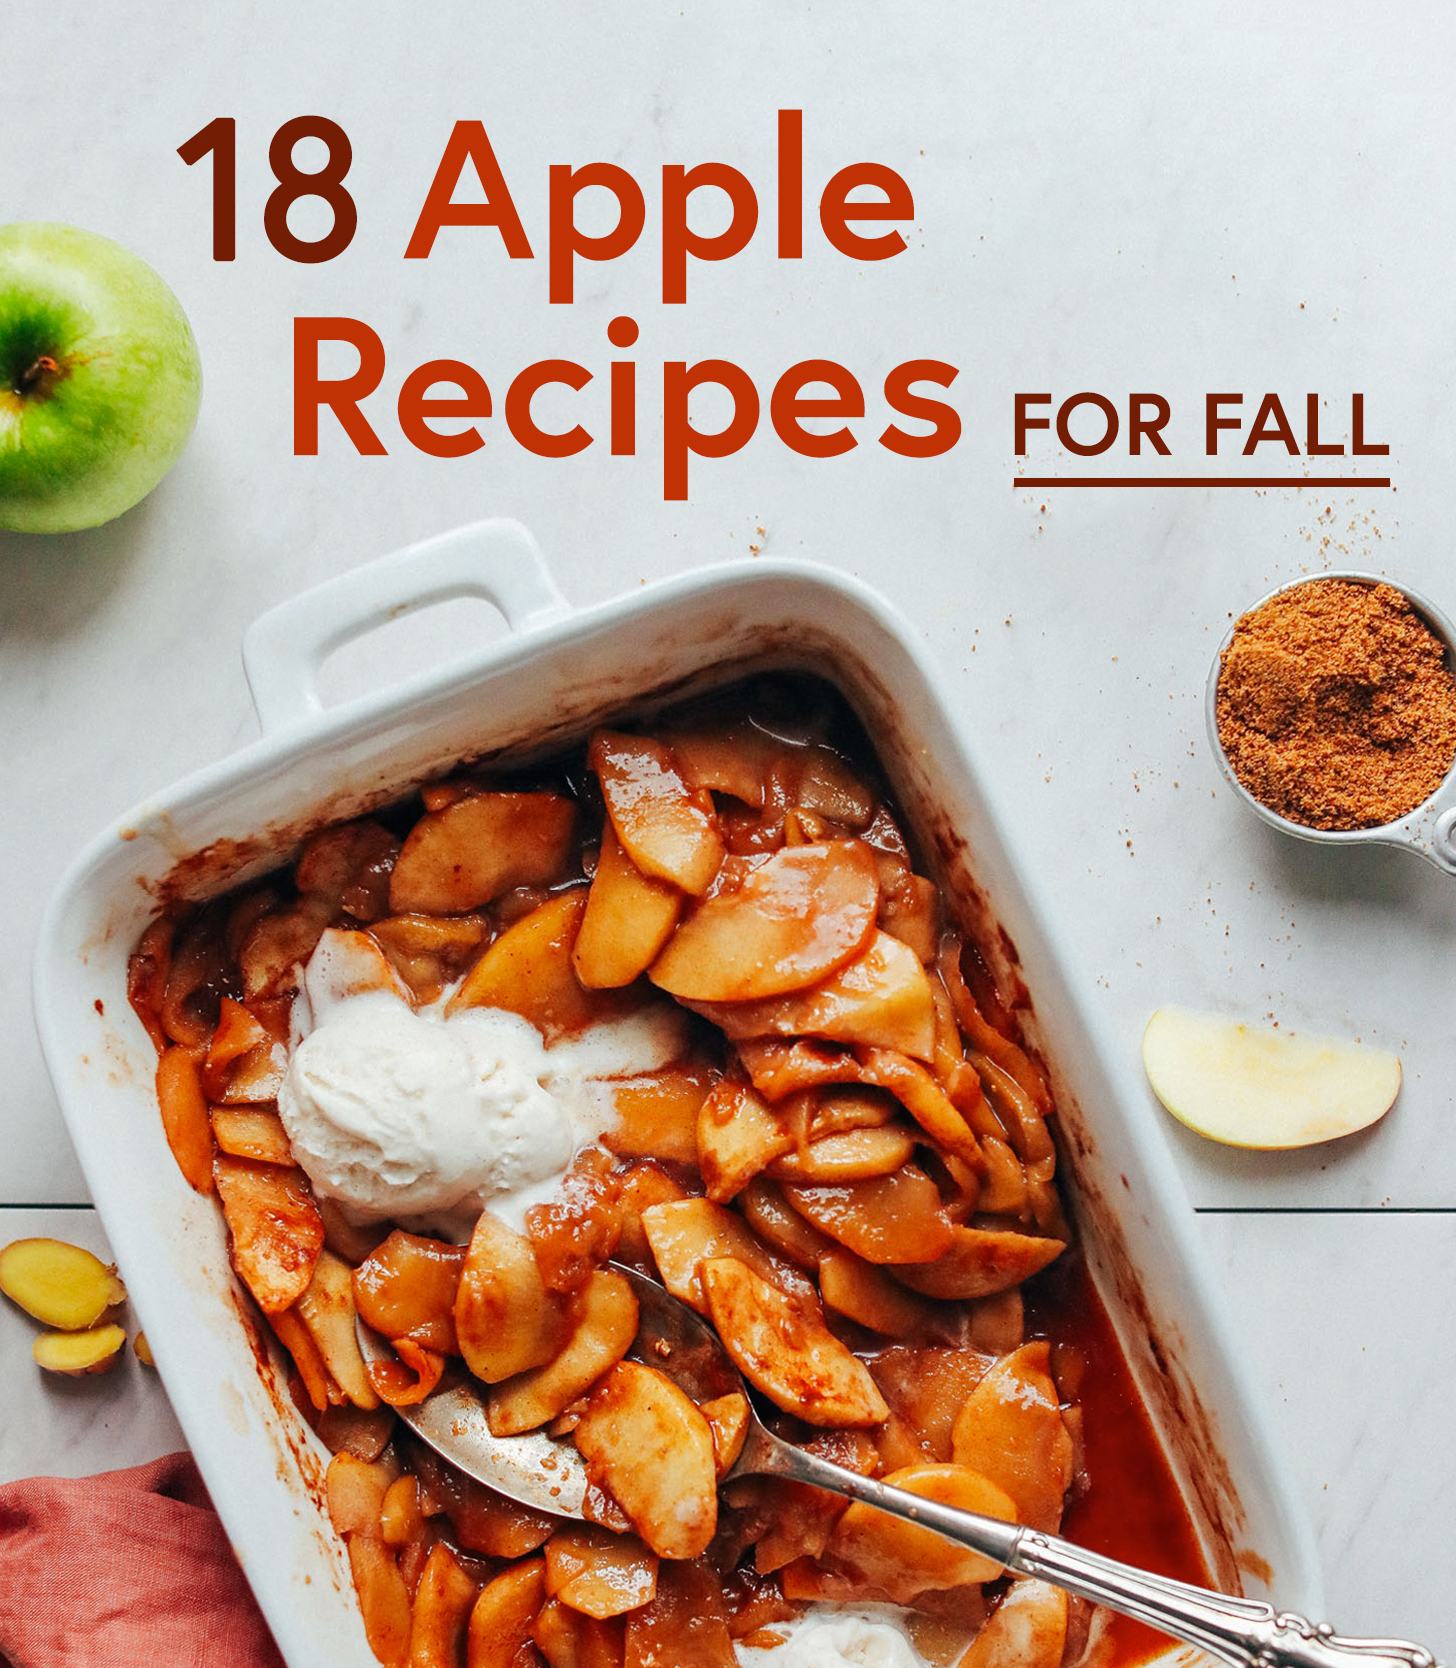 Pan of Baked Apples for our roundup of 18 Apple Recipes for Fall